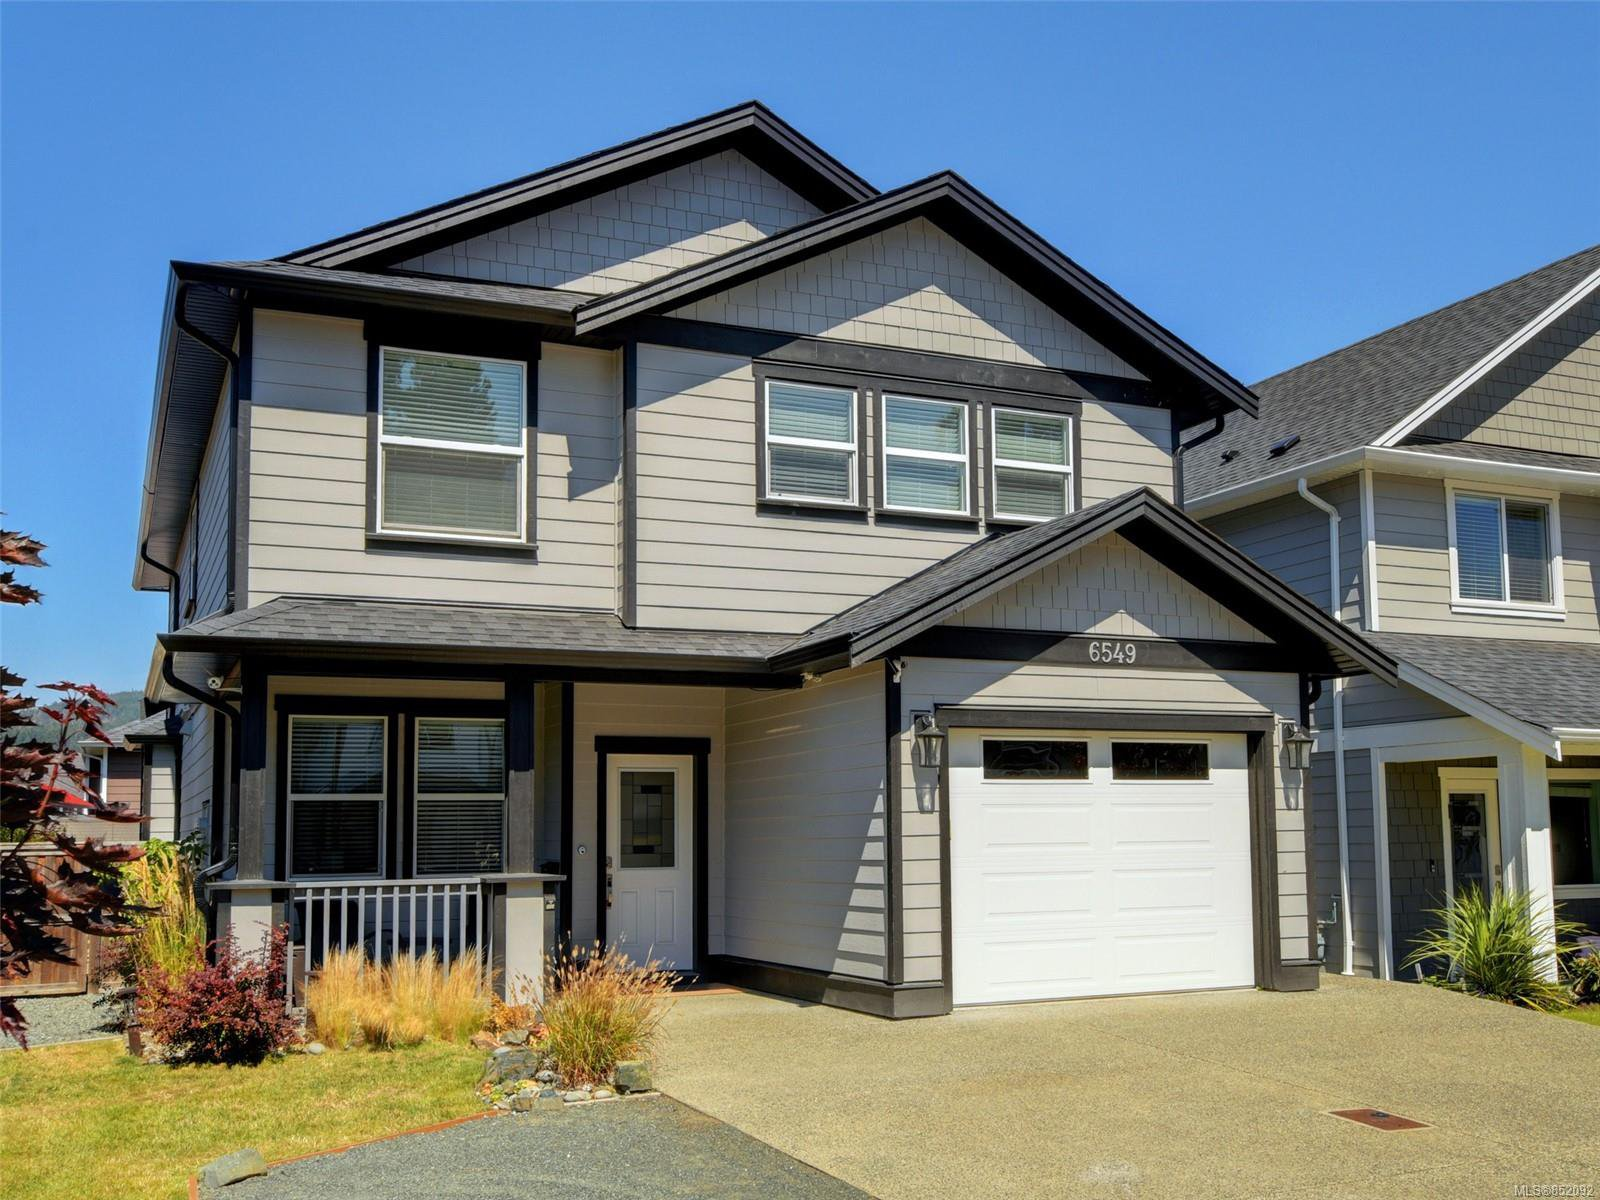 Main Photo: 6549 Steeple Chase in : Sk Sooke Vill Core House for sale (Sooke)  : MLS®# 852092